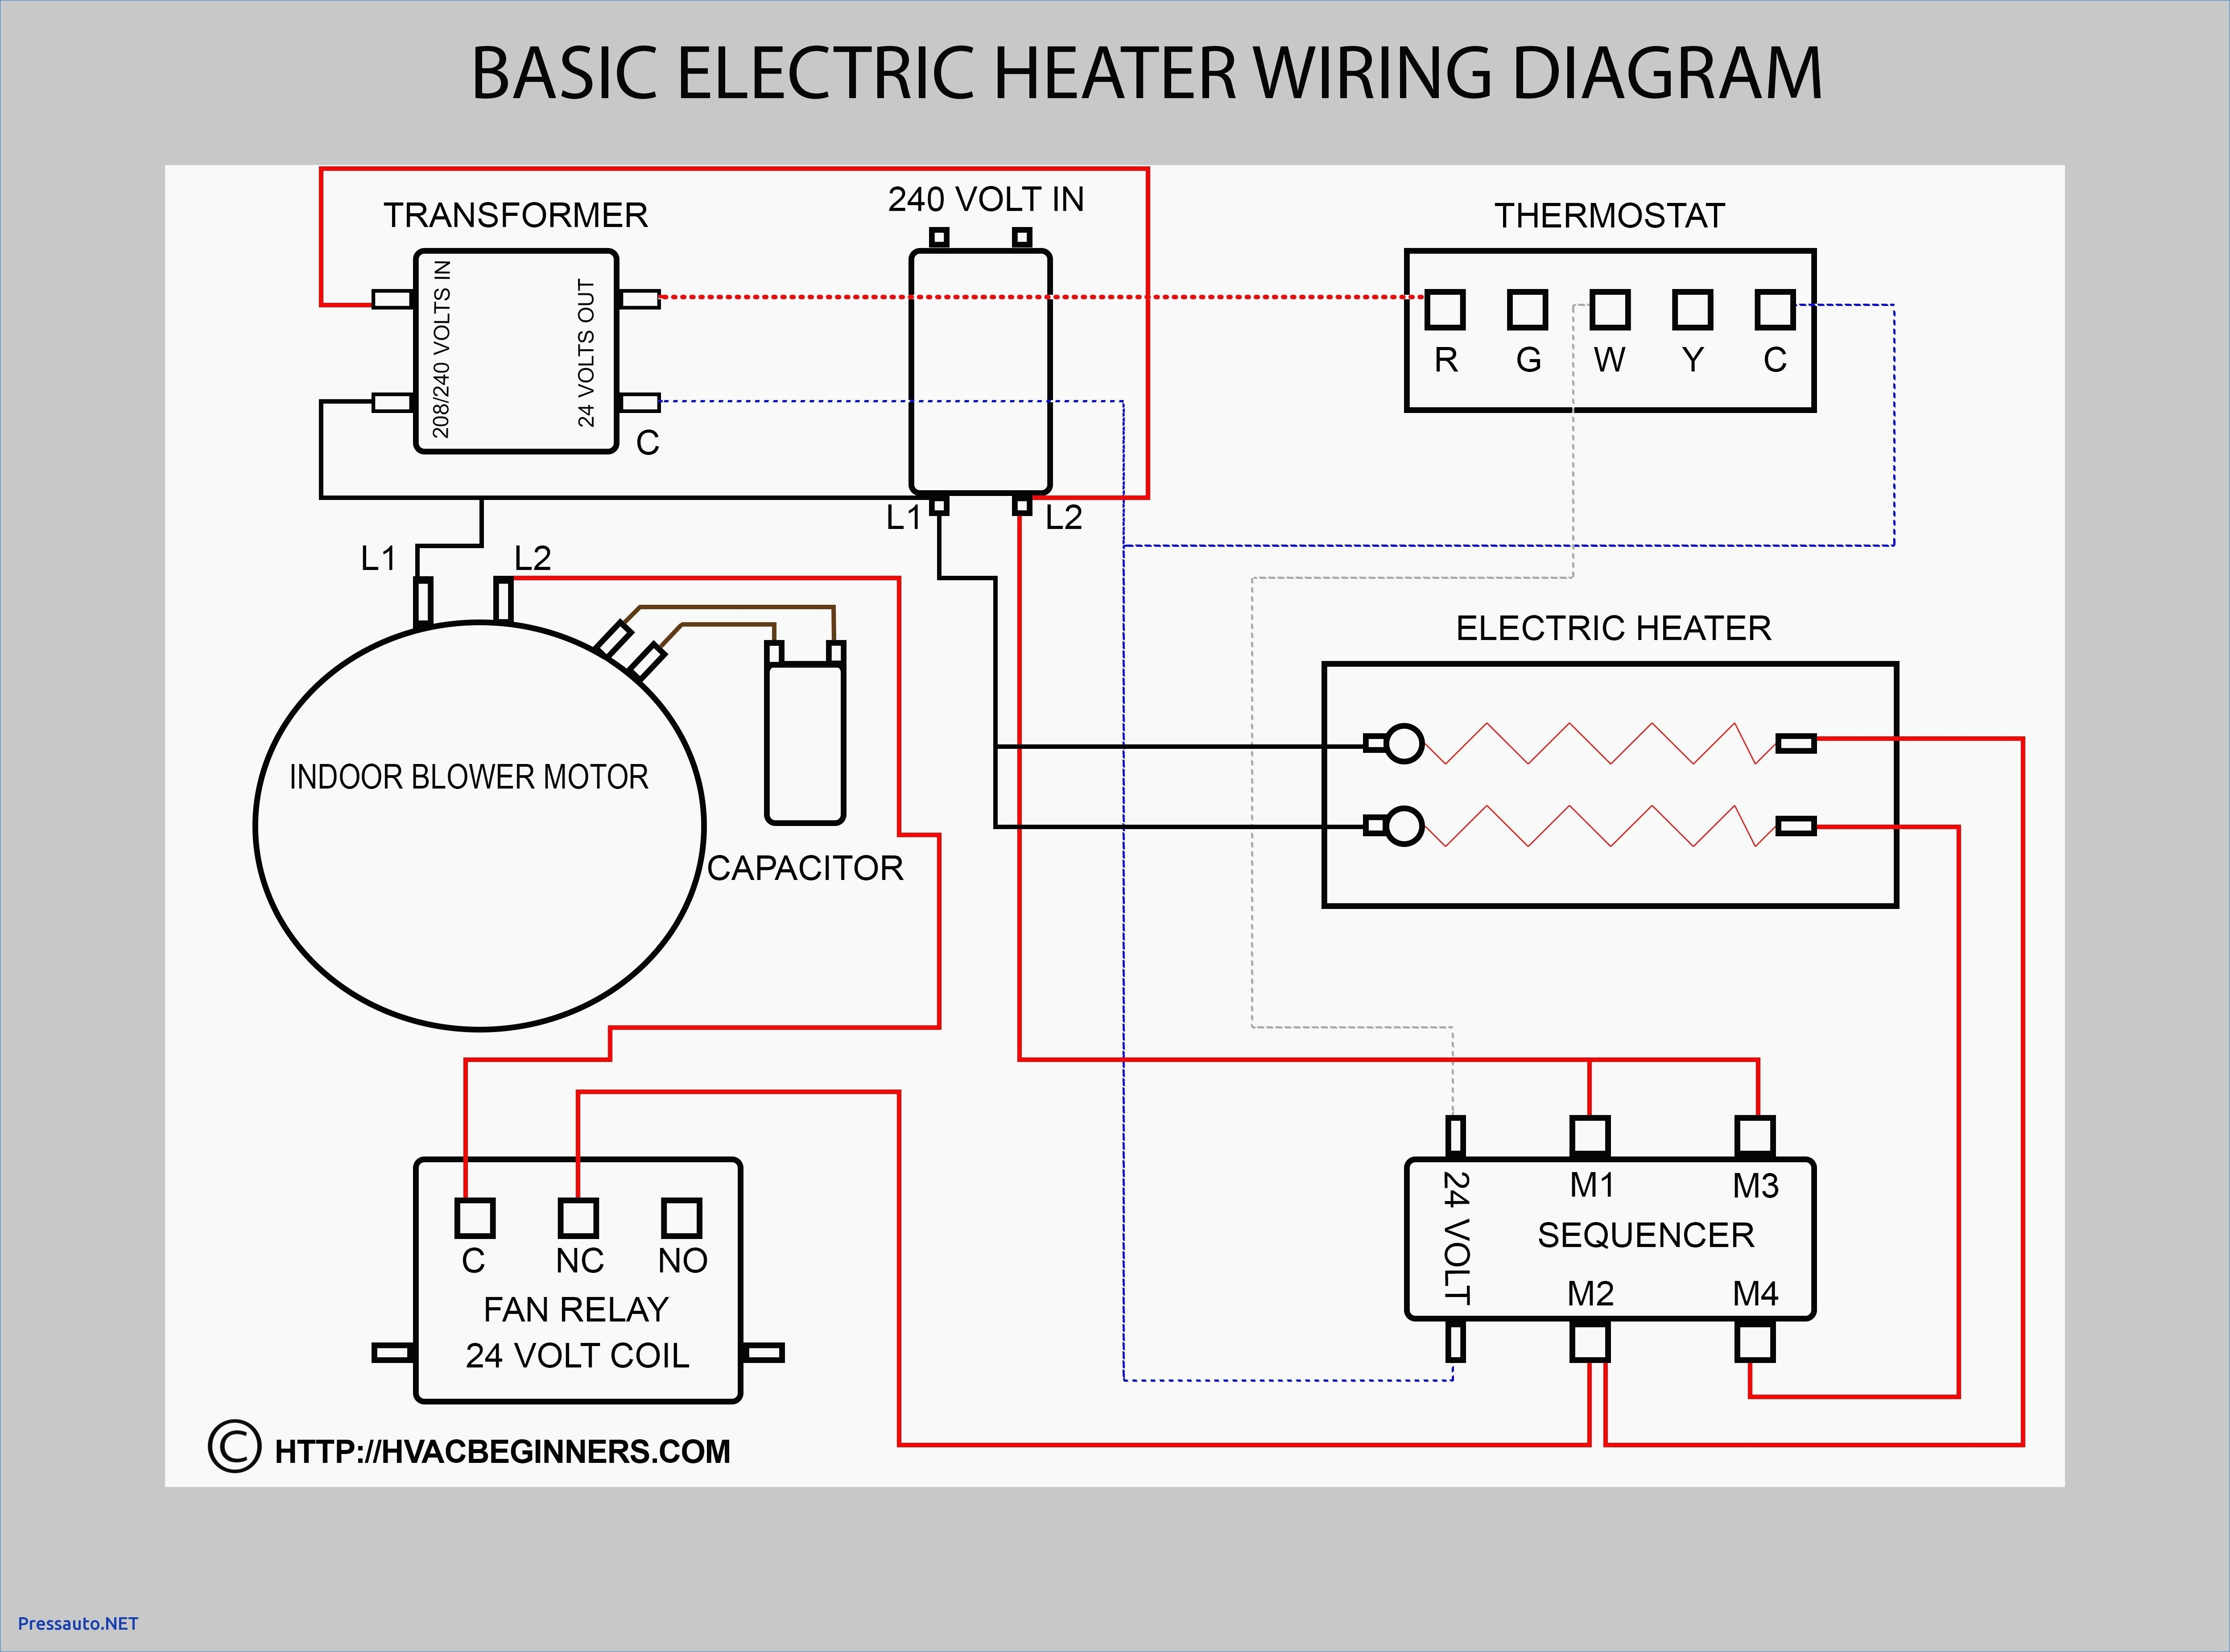 Nac036aka1 contactor wiring diagram fan motor diy wiring diagrams old fashioned circuit diagram of contactor composition best images rh oursweetbakeshop info asfbconference2016 Images